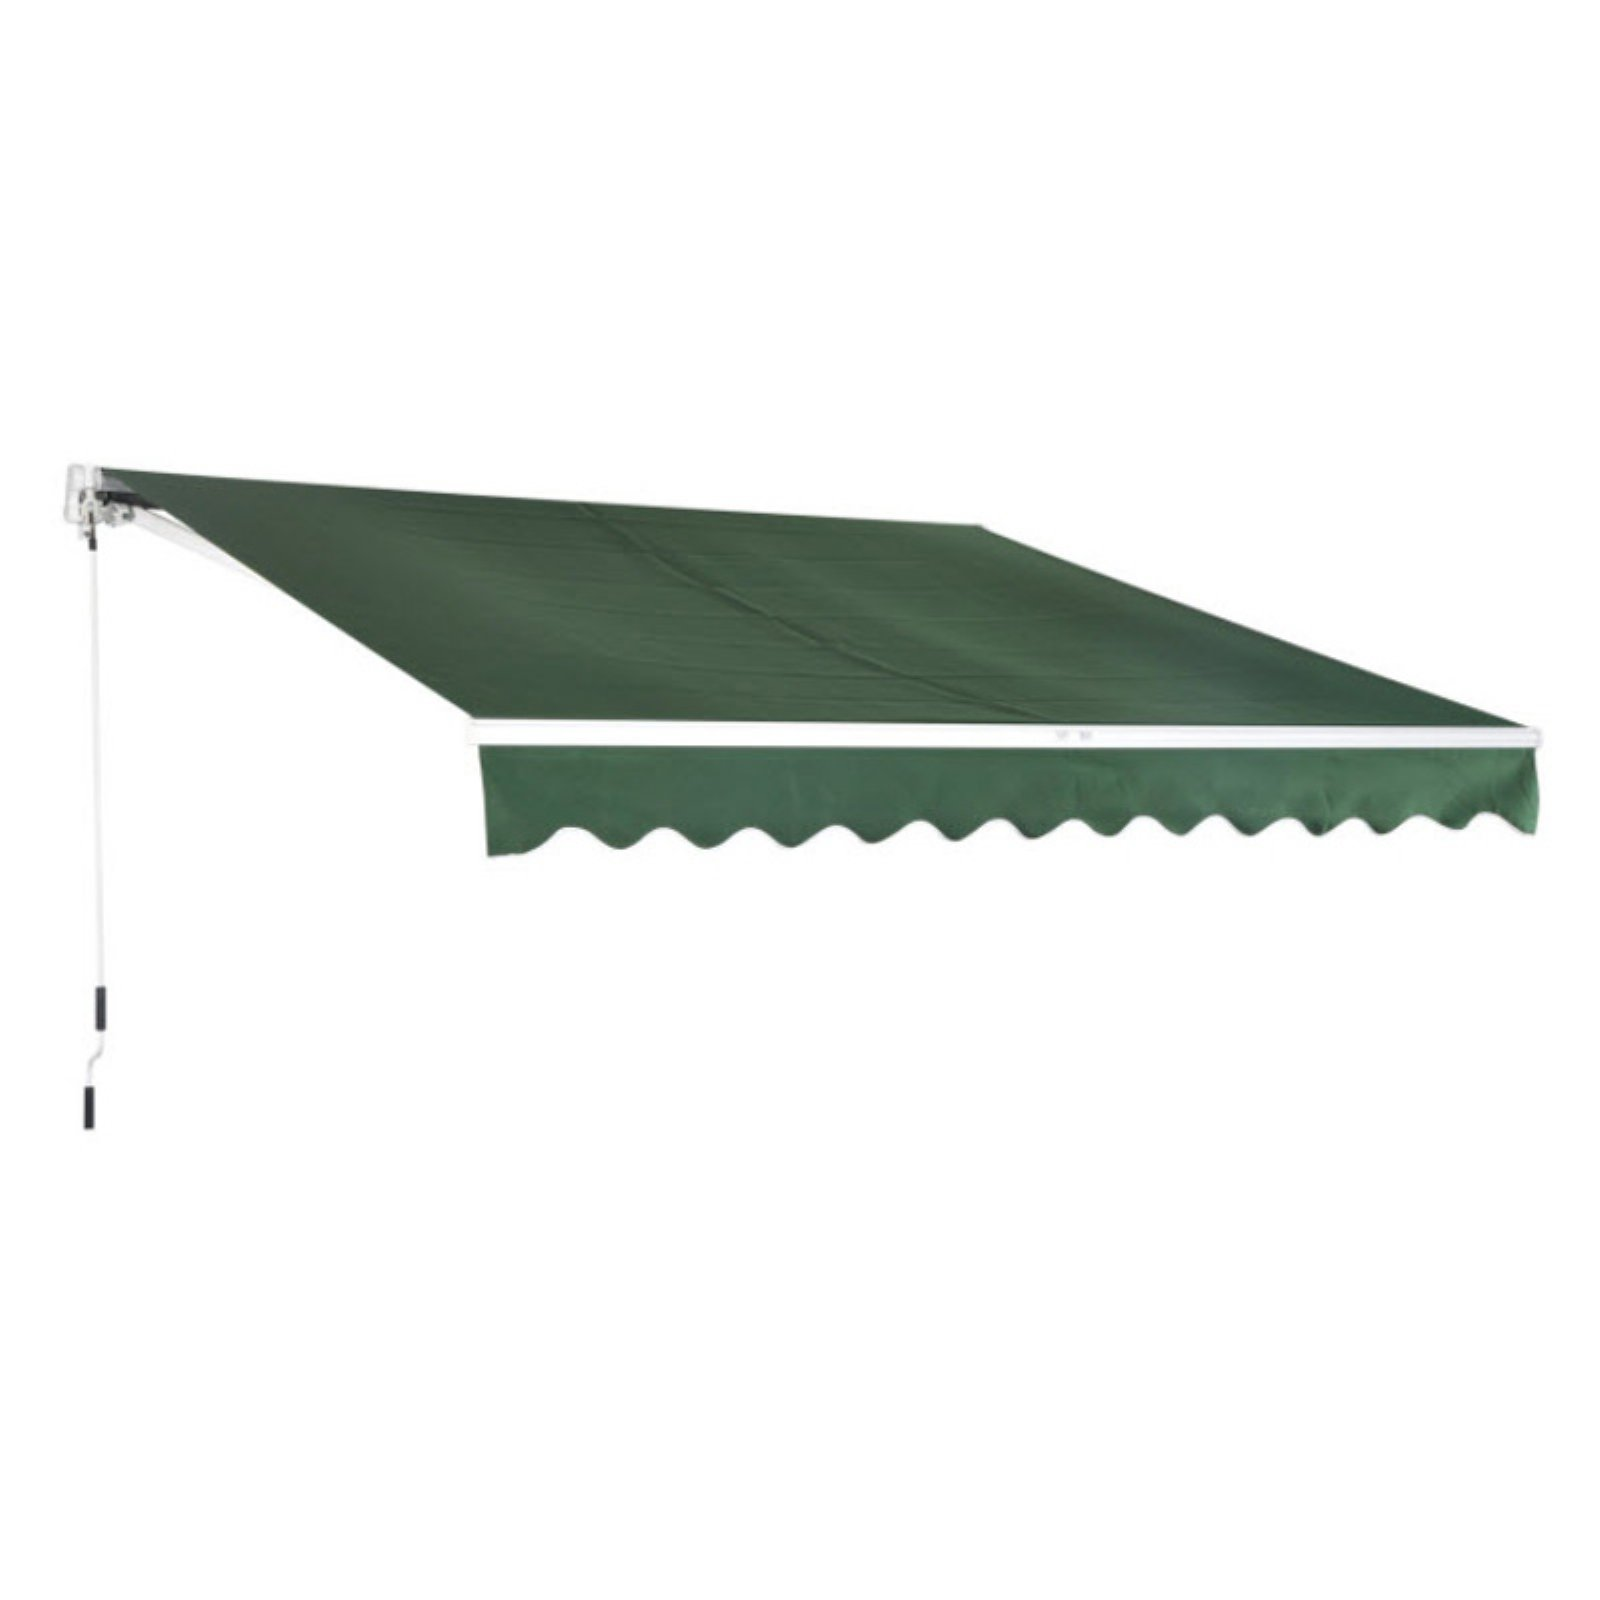 Ktaxon 12u0027 X 10u0027 Manual Retractable Awning Beige Outdoor Shelter Sunshade  Rainshade Window Awning/Door Awning   Walmart.com